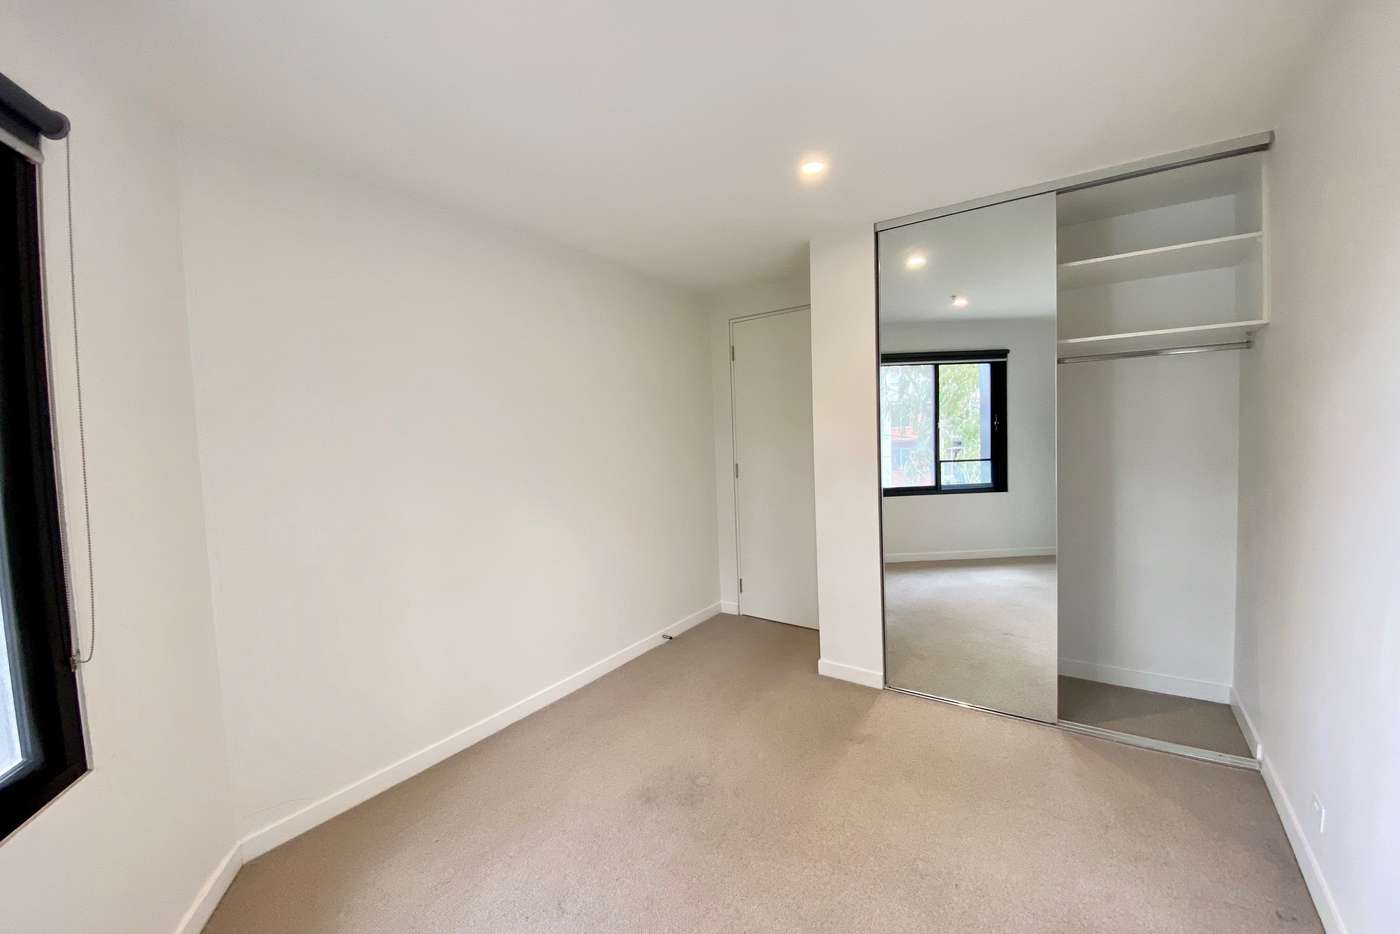 Seventh view of Homely apartment listing, 109/5 Courtney St, North Melbourne VIC 3051